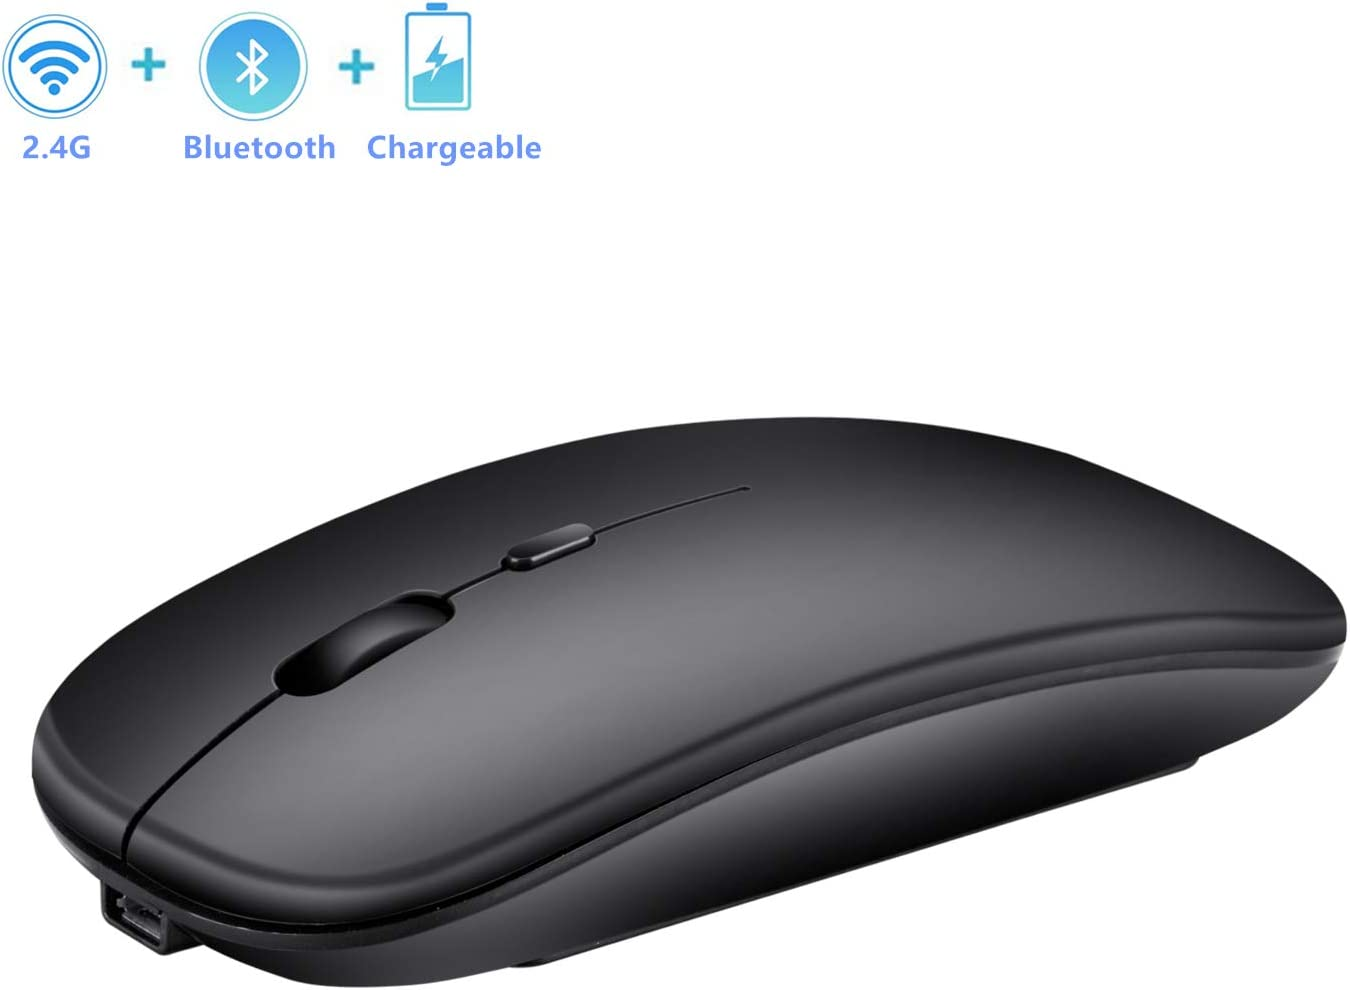 Bluetooth & 2.4G Slim Wireless Mouse, 3 Adjustable DPI,Less Noise, Portable Dual Mode Rechargeable Wireless Mouse for PC,Computer,Laptop, MacBook (Matte Black)